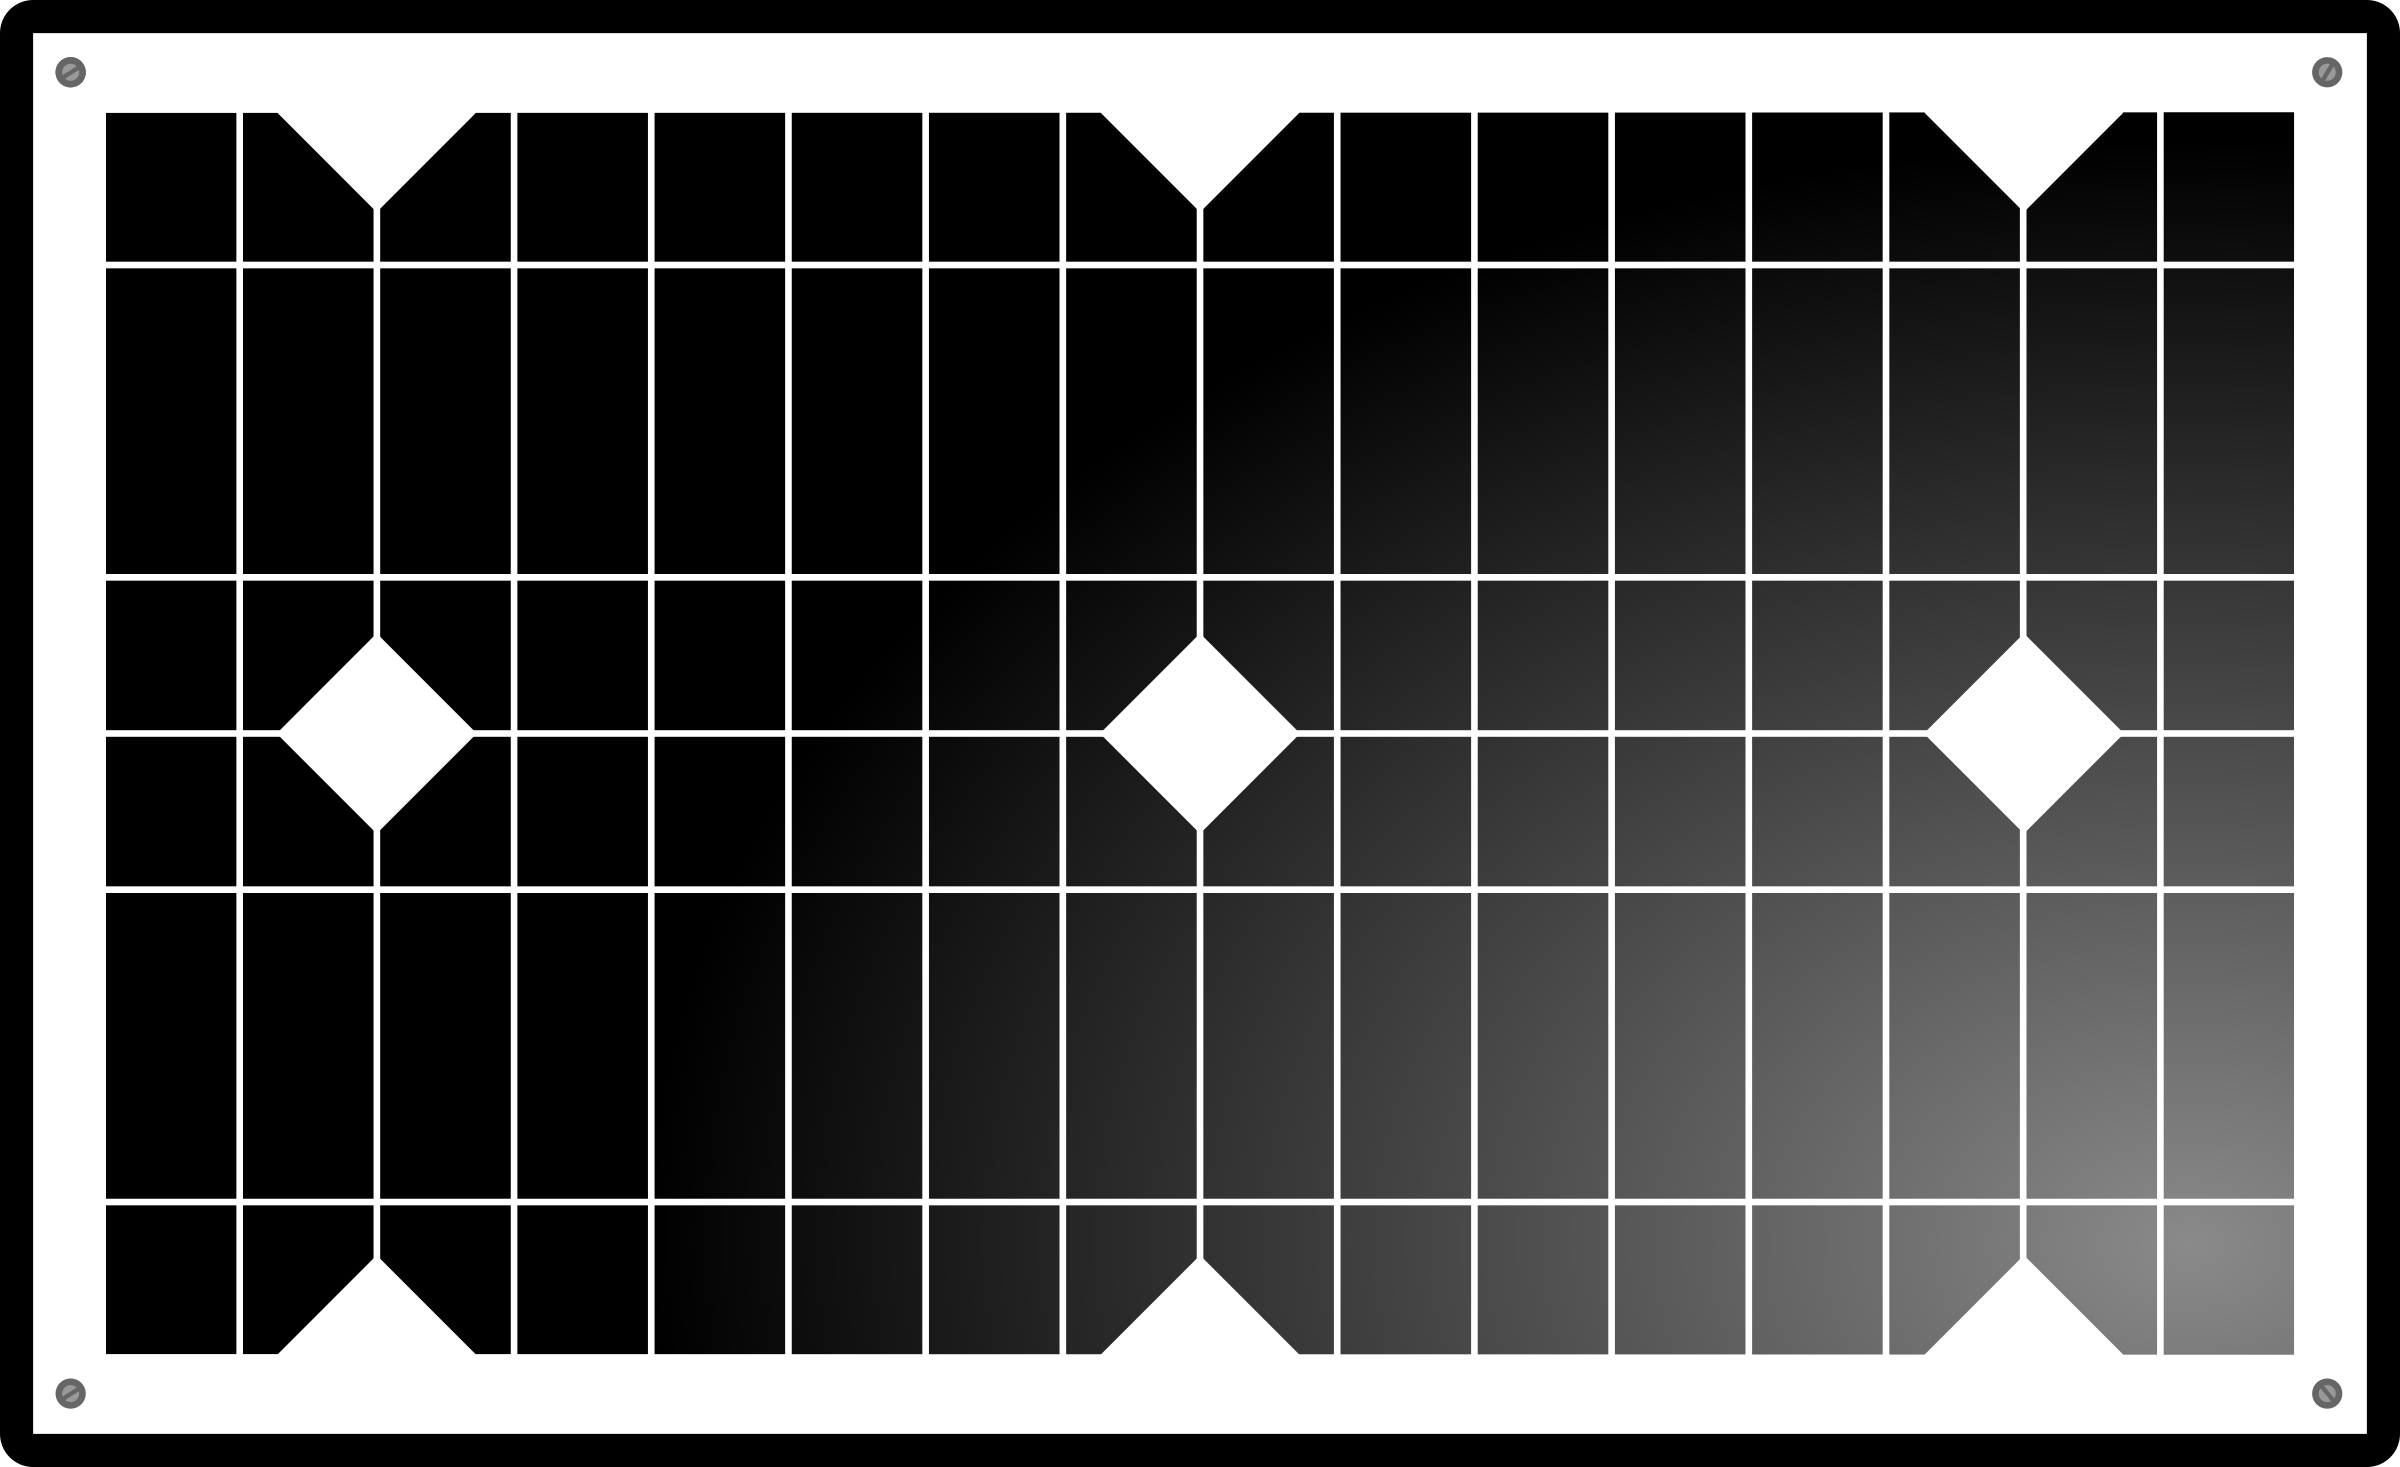 Solar panel clipart black background.